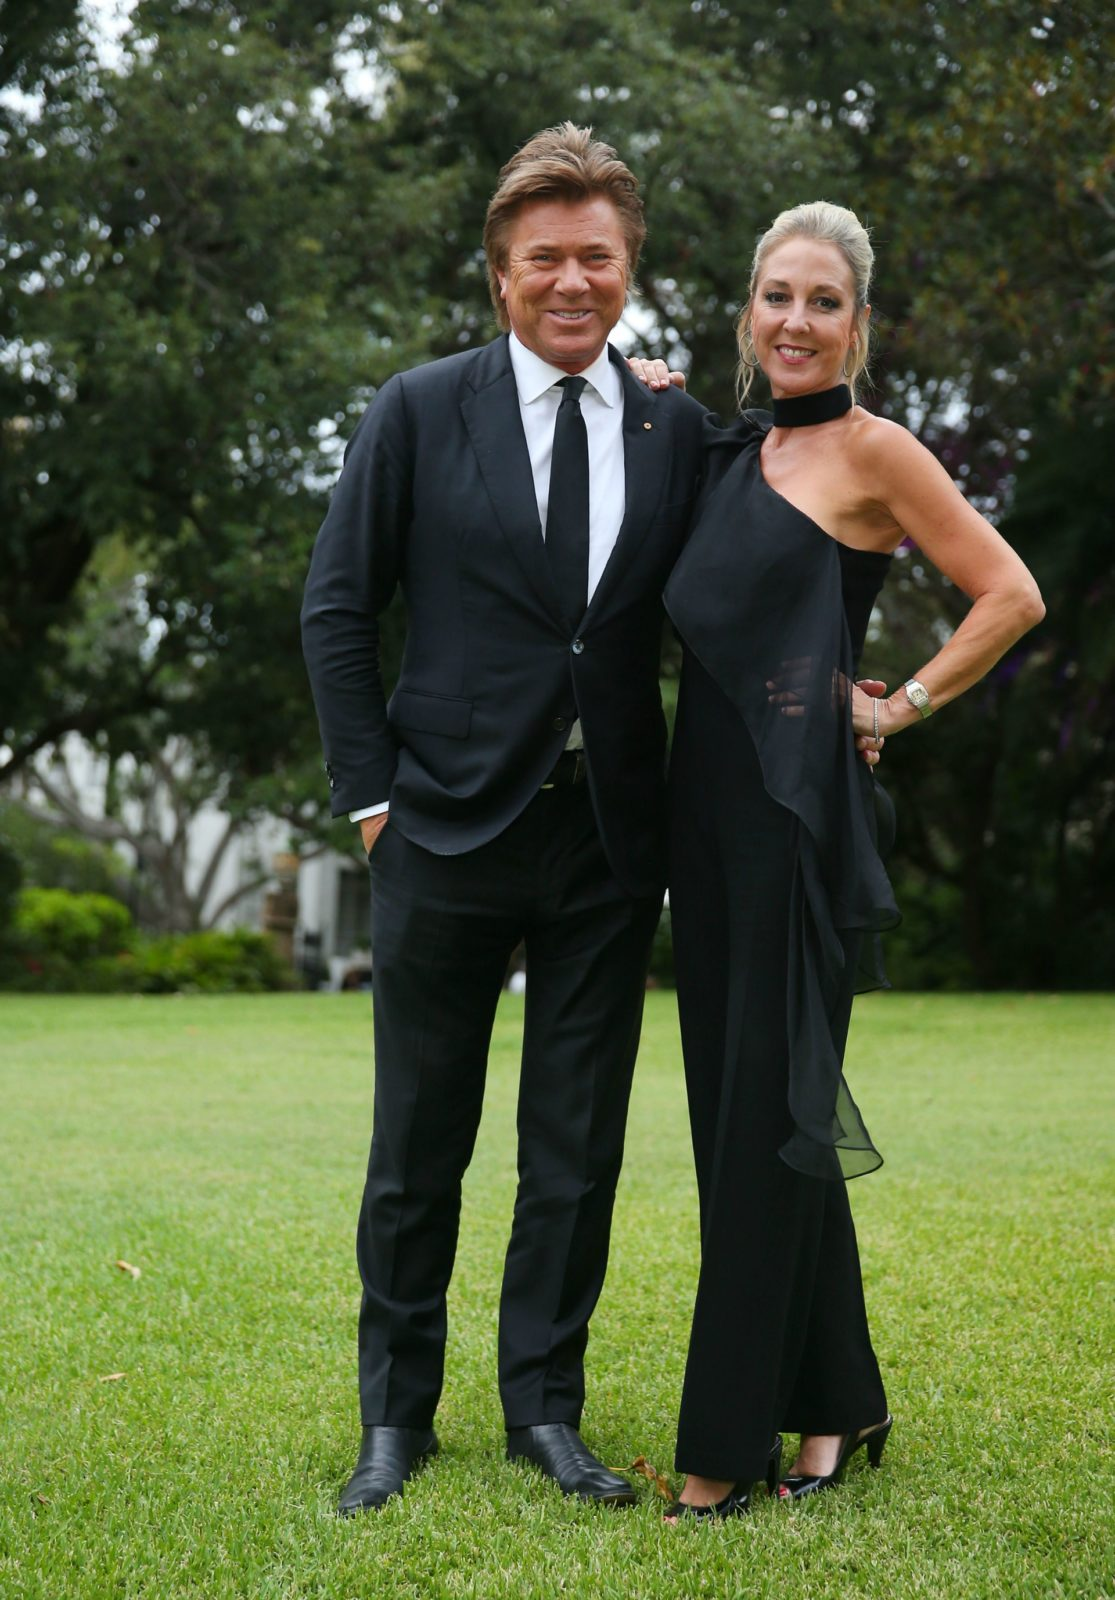 Richard and Virginia were special guests at this year's Silver Party in Sydney.